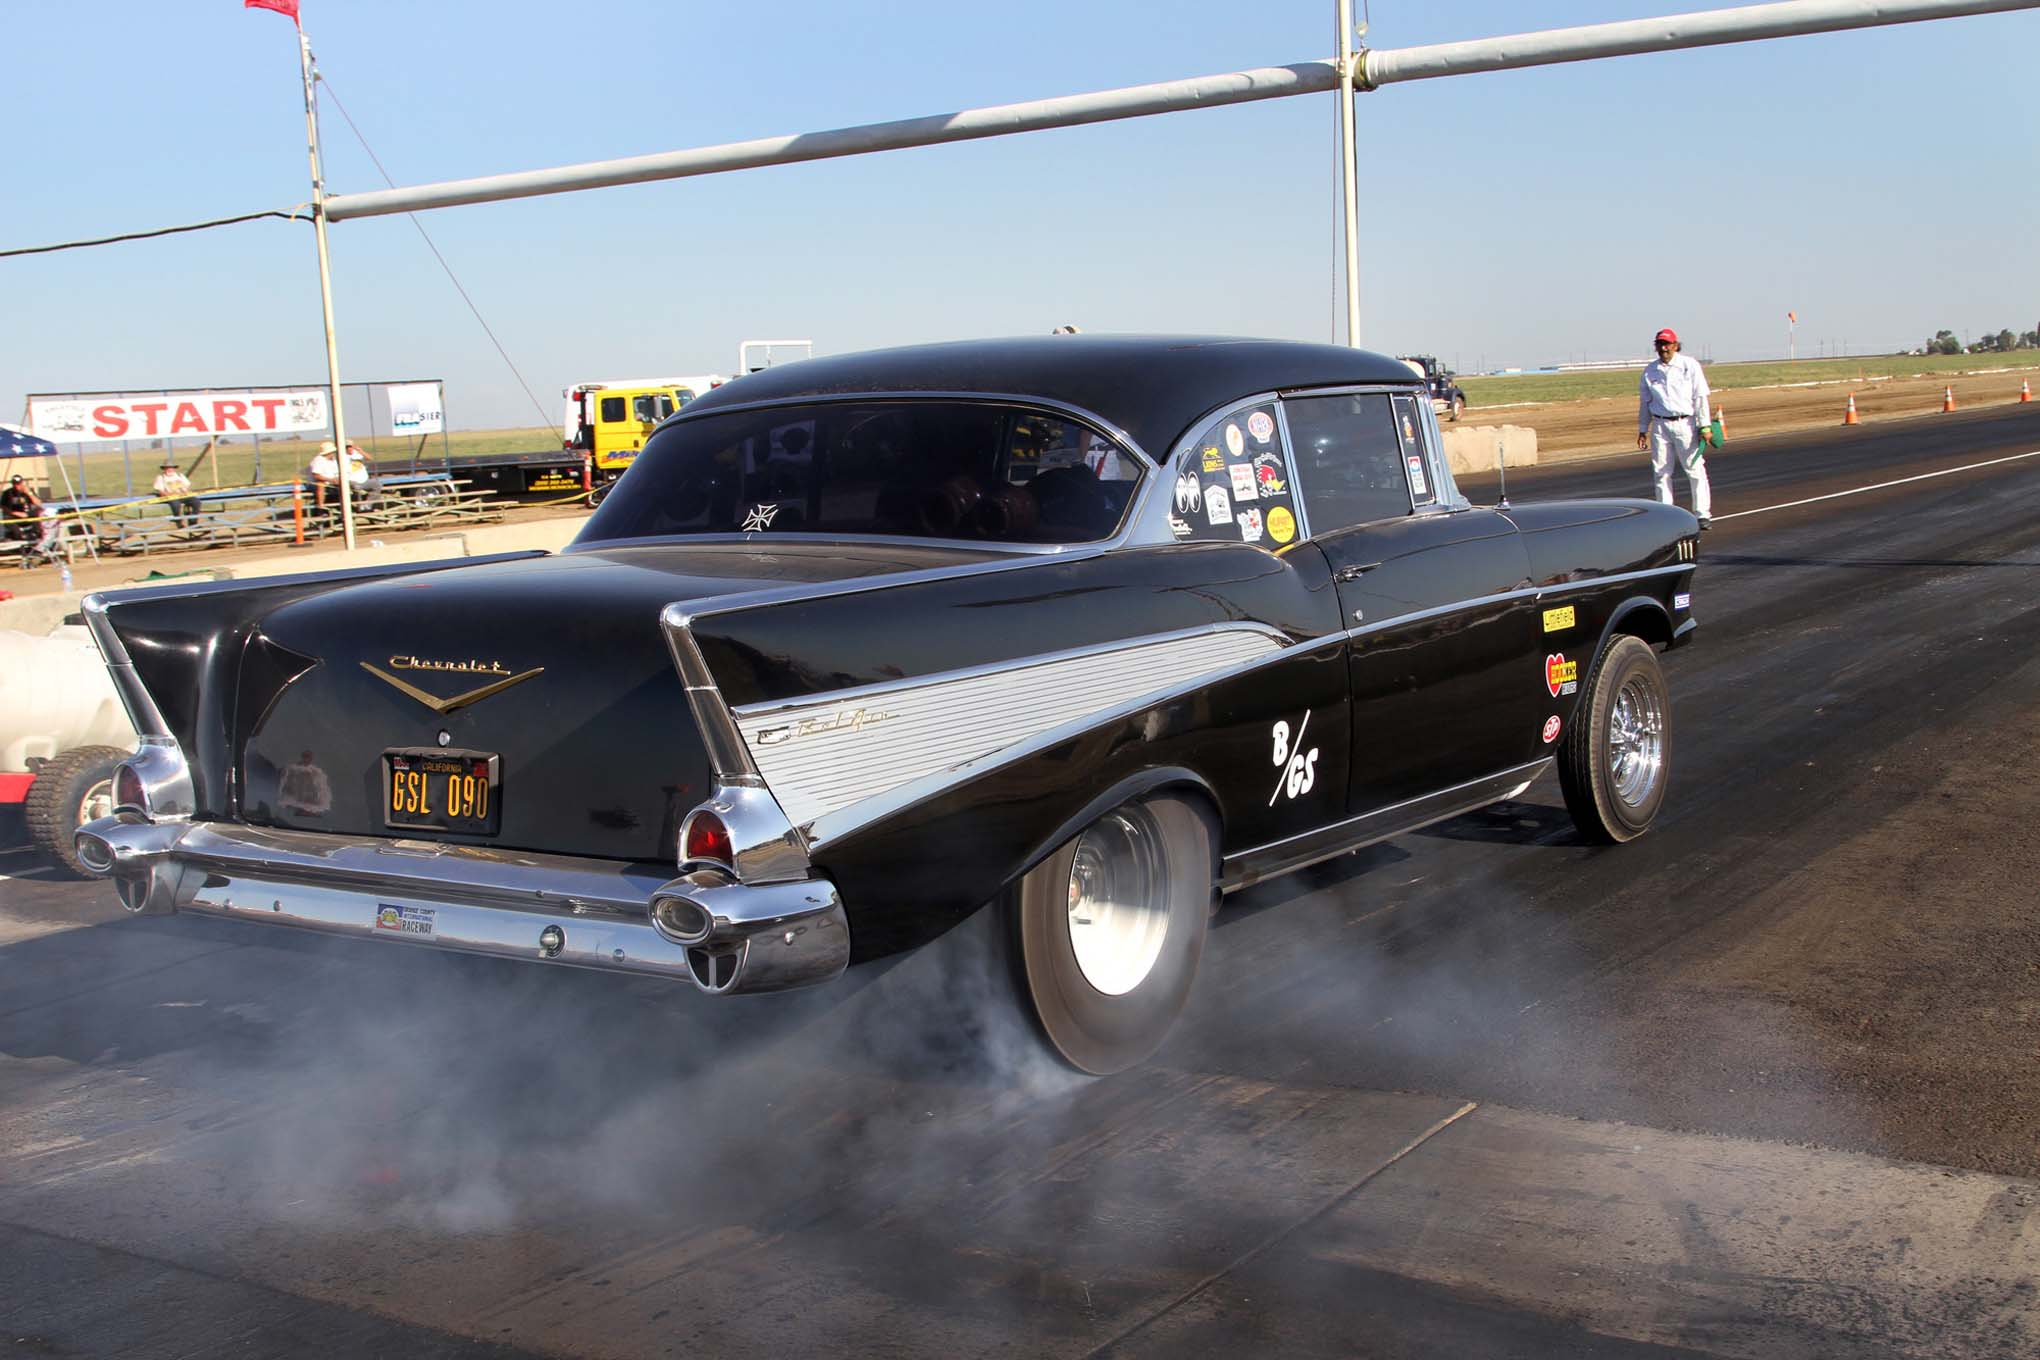 Burnouts were very popular among spectators. The more smoke, the louder the cheers from the fans. The supercharged small-block Chevy and vintage-style pie crust drag slicks on this '57 Bel Air provided some of the best burnouts for fans during the event.